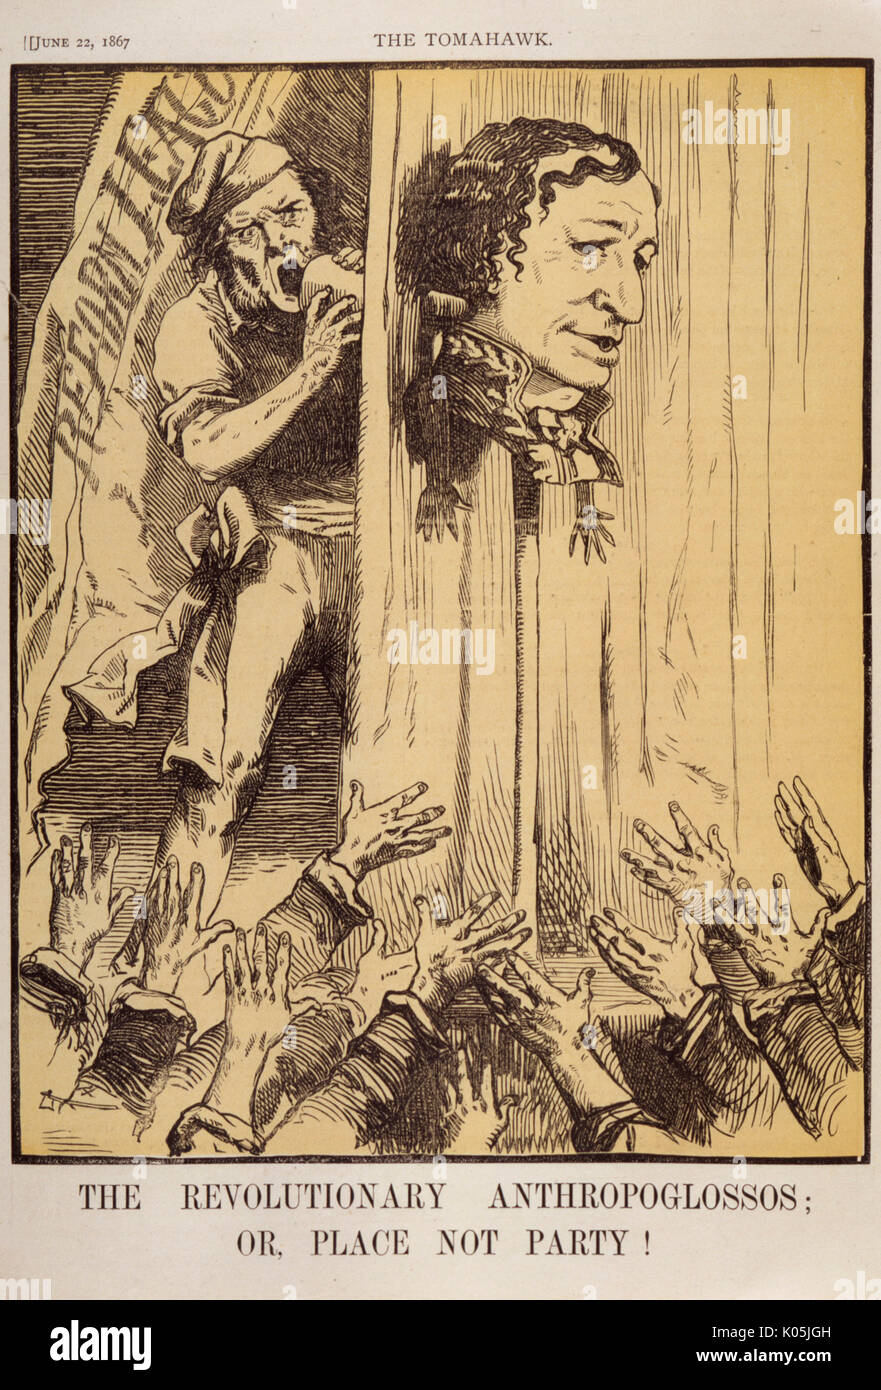 Benjamin Disraeli, earl of Beaconsfield  depicted as the mouthpiece of the Reform League mob      Date: 1804 - 1881 - Stock Image